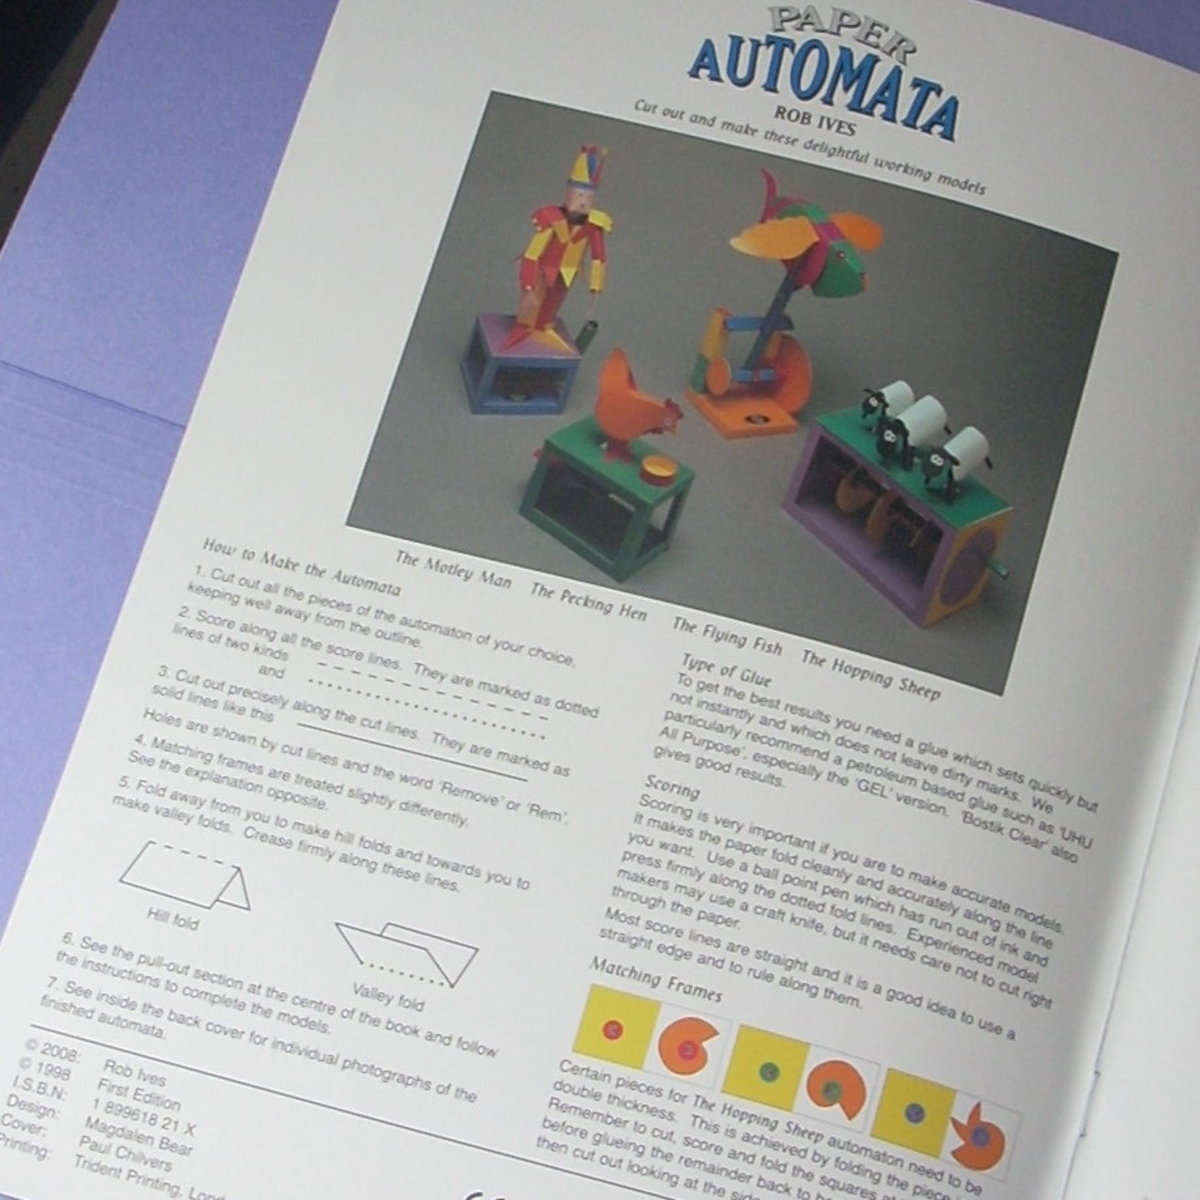 Automata directions